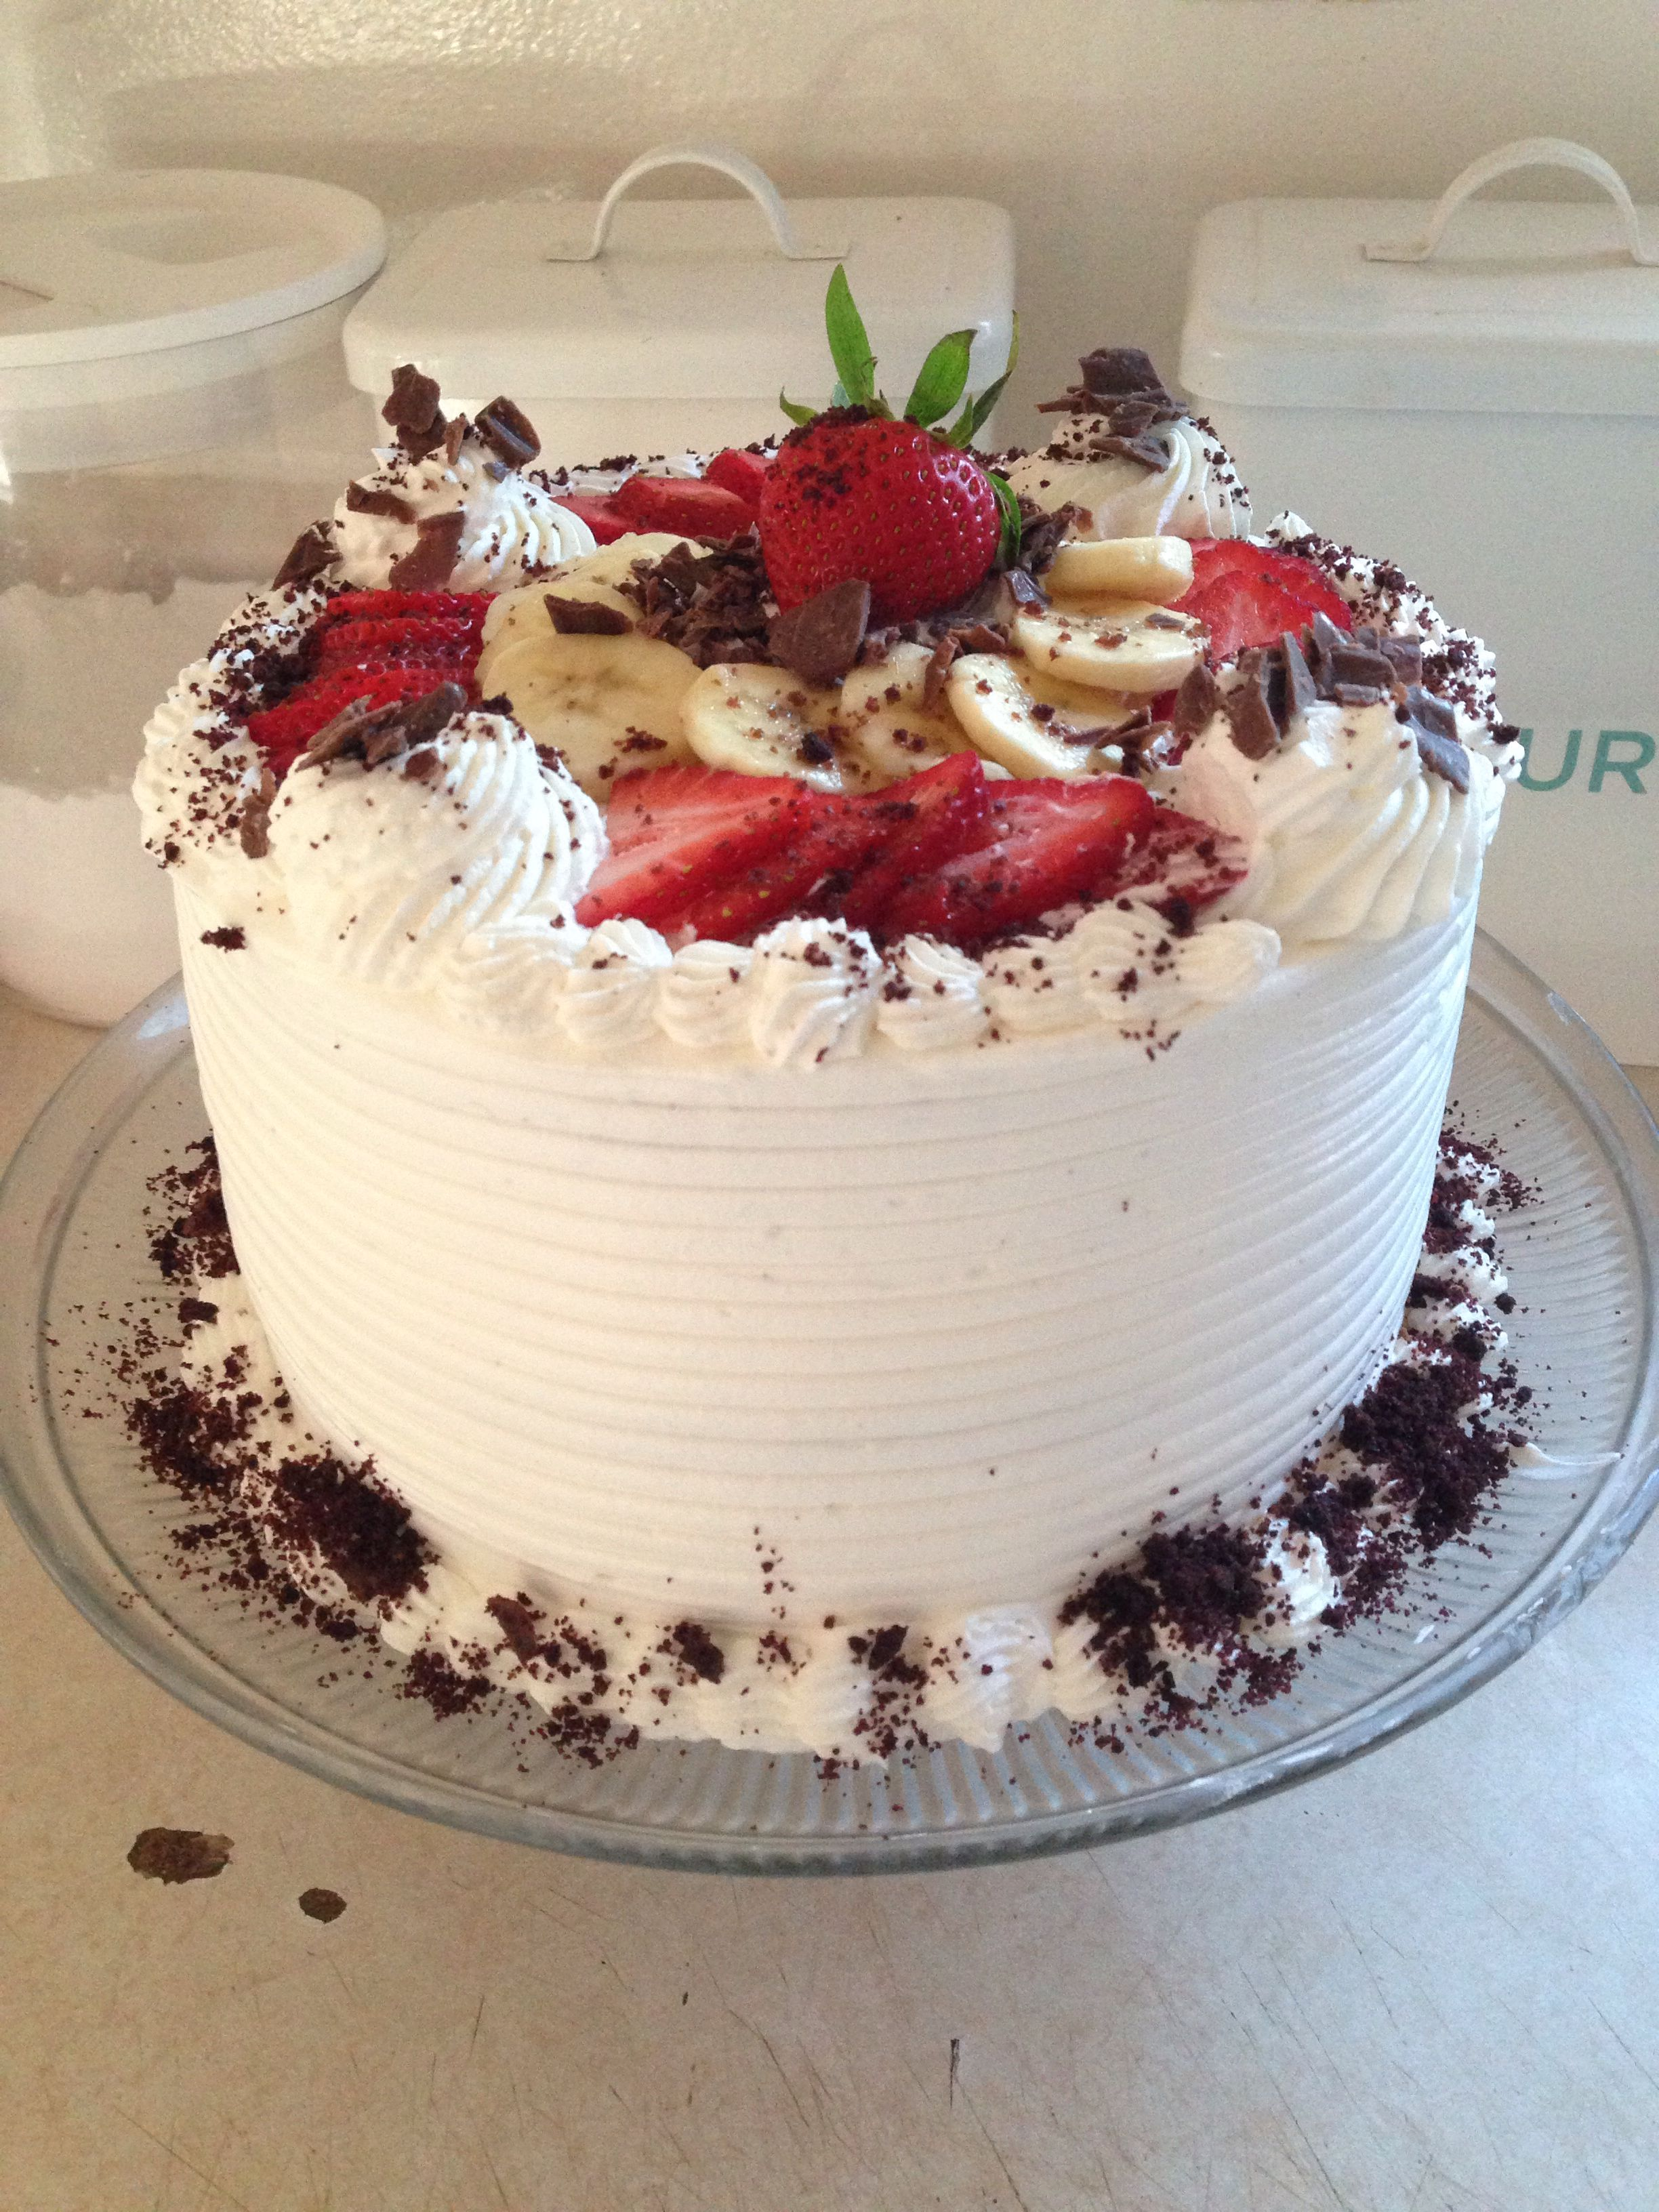 Brown Derby Cake 4 Layers Of Chocolate Cake Filled With Chopped Strawberries Banana Slices Iced With Whipped Dessert Cake Recipes Cake Desserts Sweet Cakes